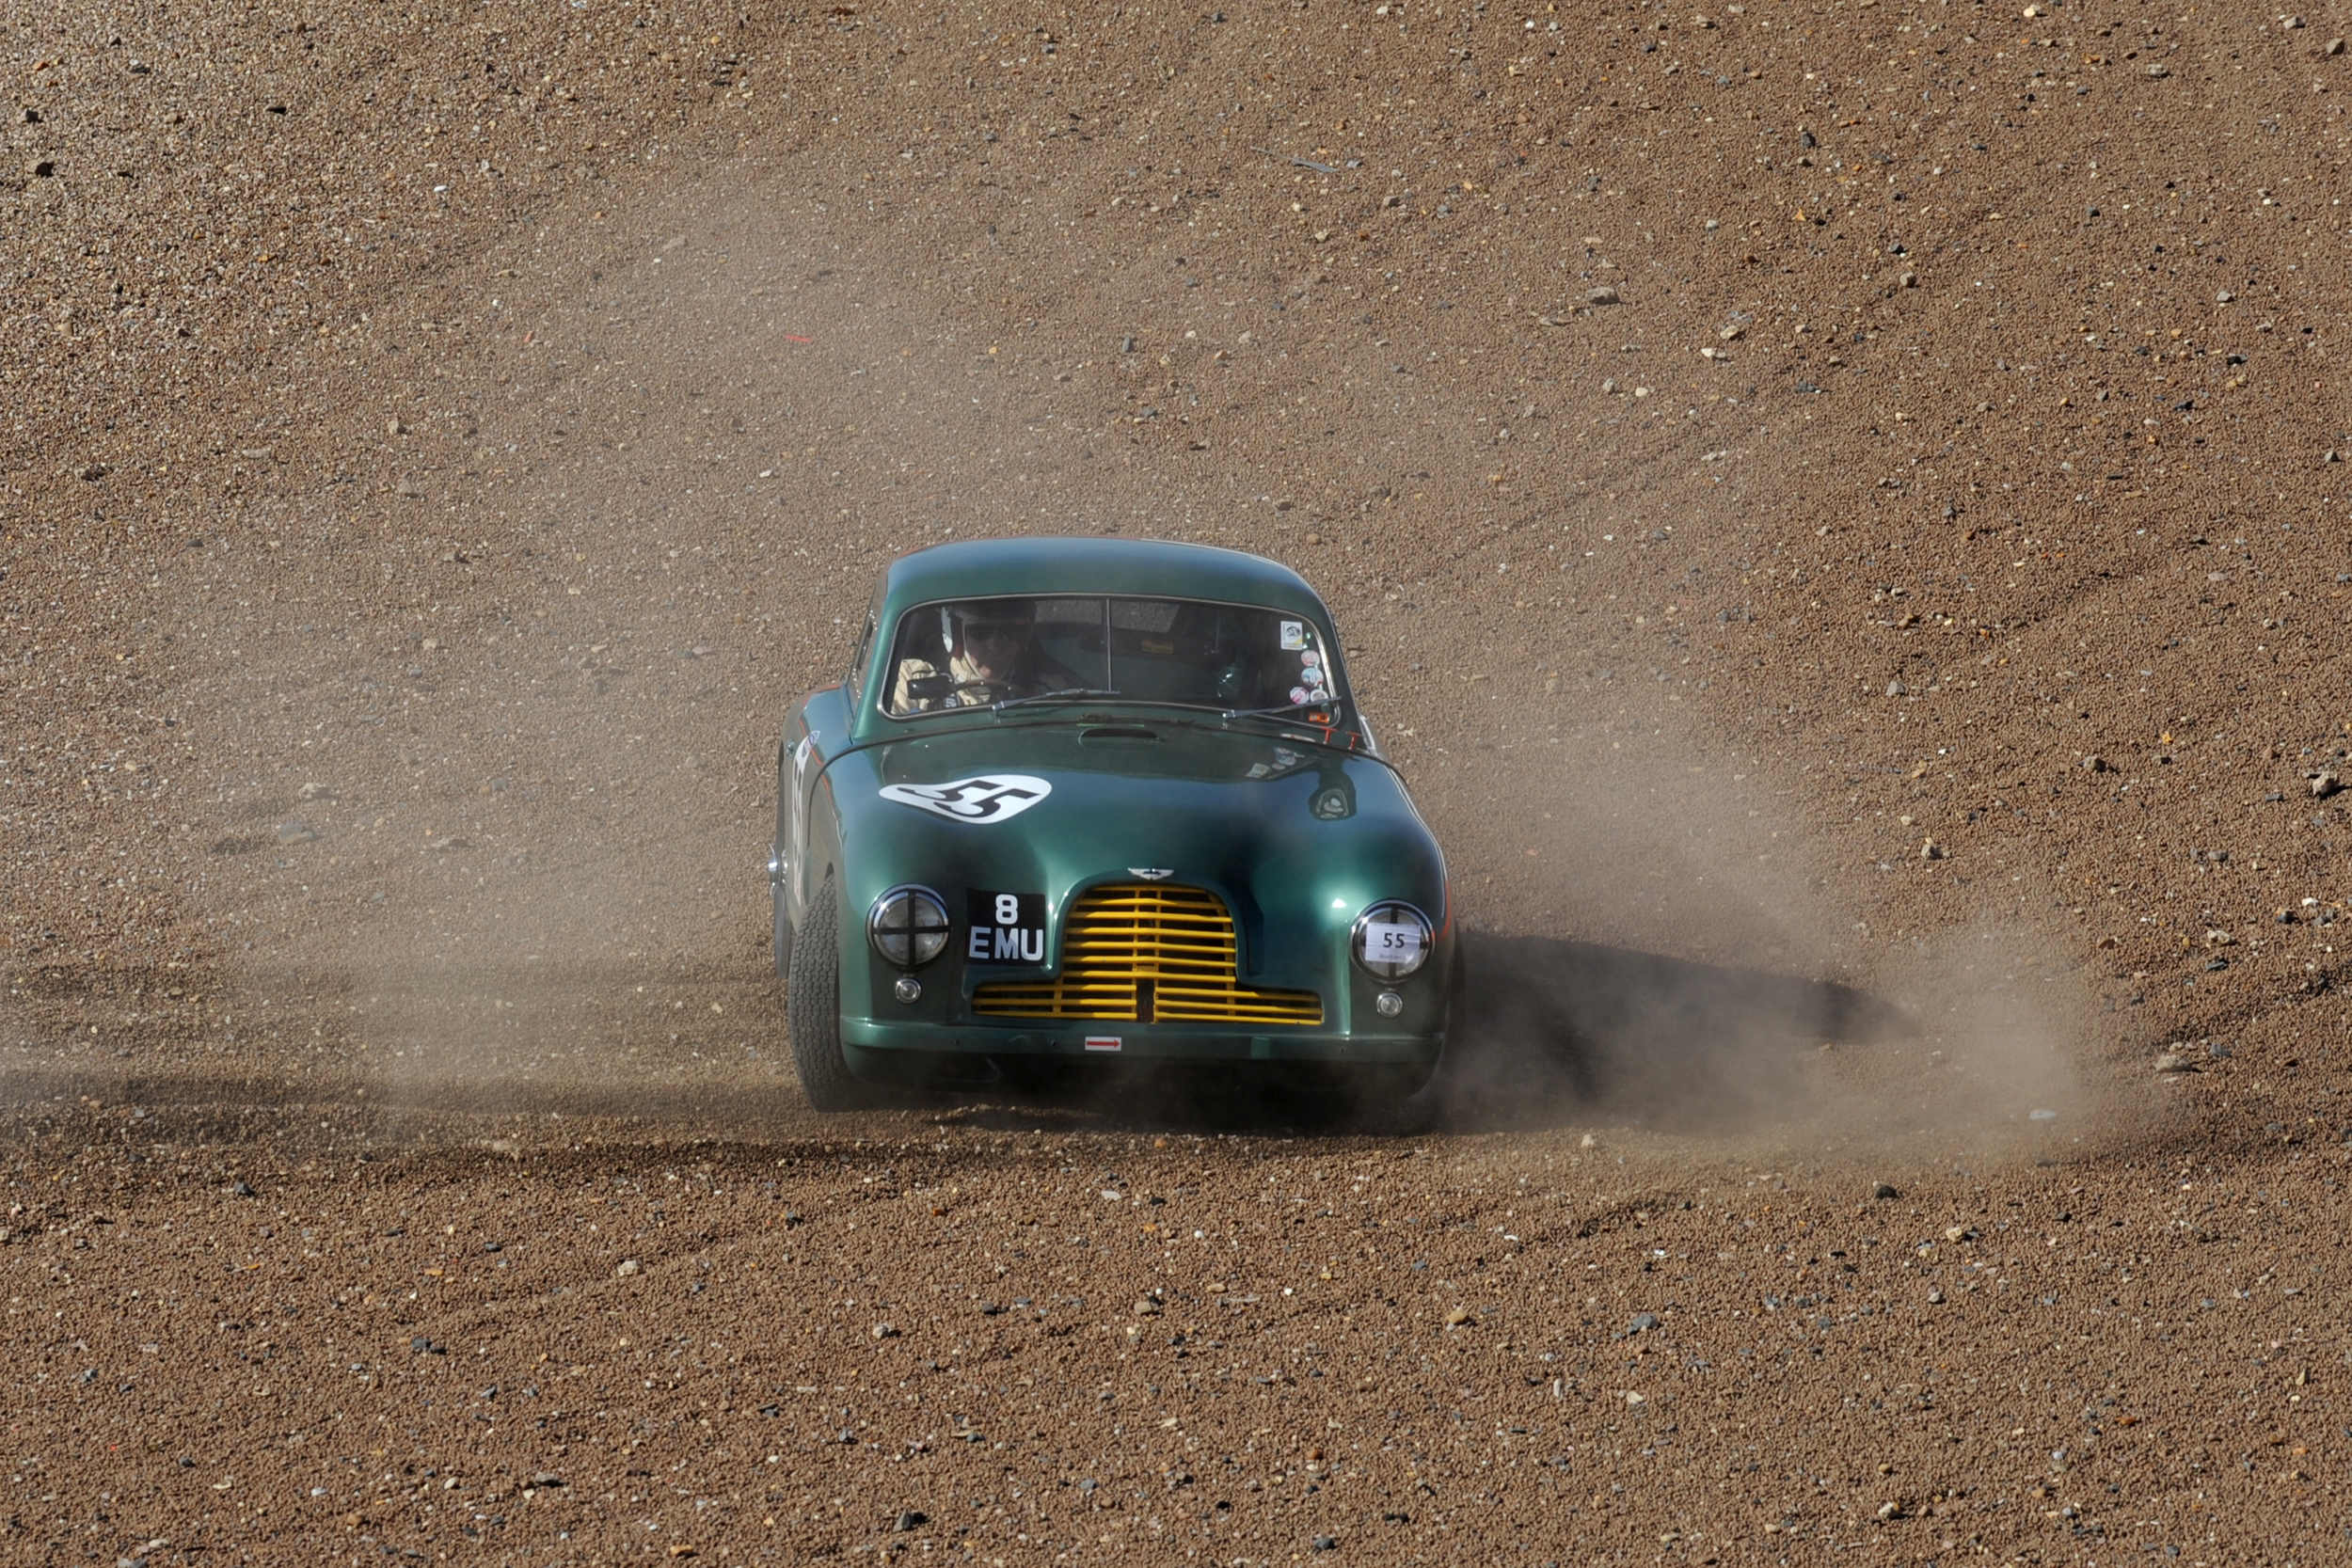 Andy Sharps 'disconcerting' moment in qualifying.                      Photo - Jeff Bloxham